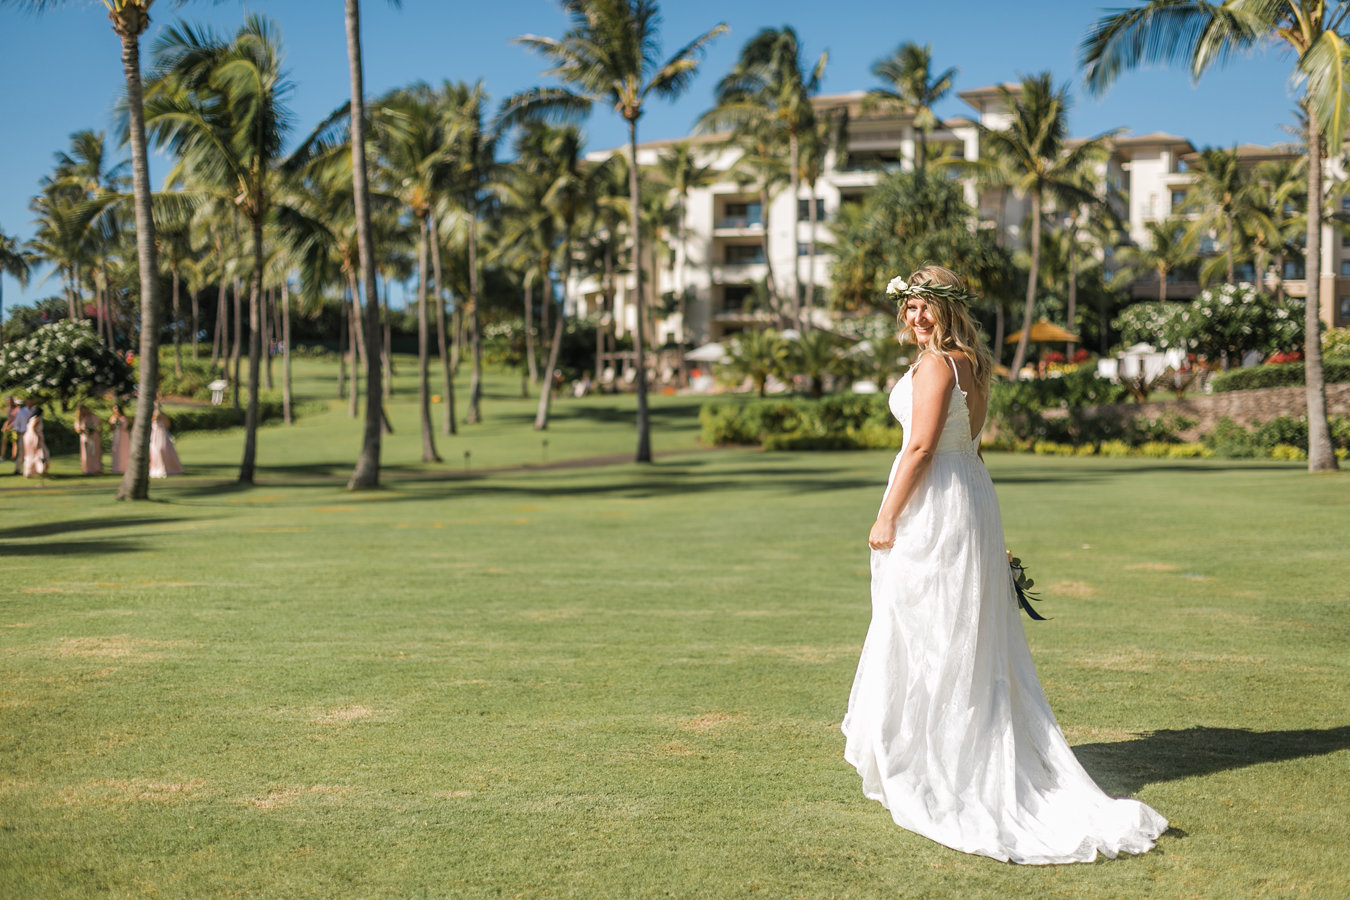 The-Ritz-Carlton-Kapalua-Maui-Wedding-Caitlin-Cathey-Photo-014